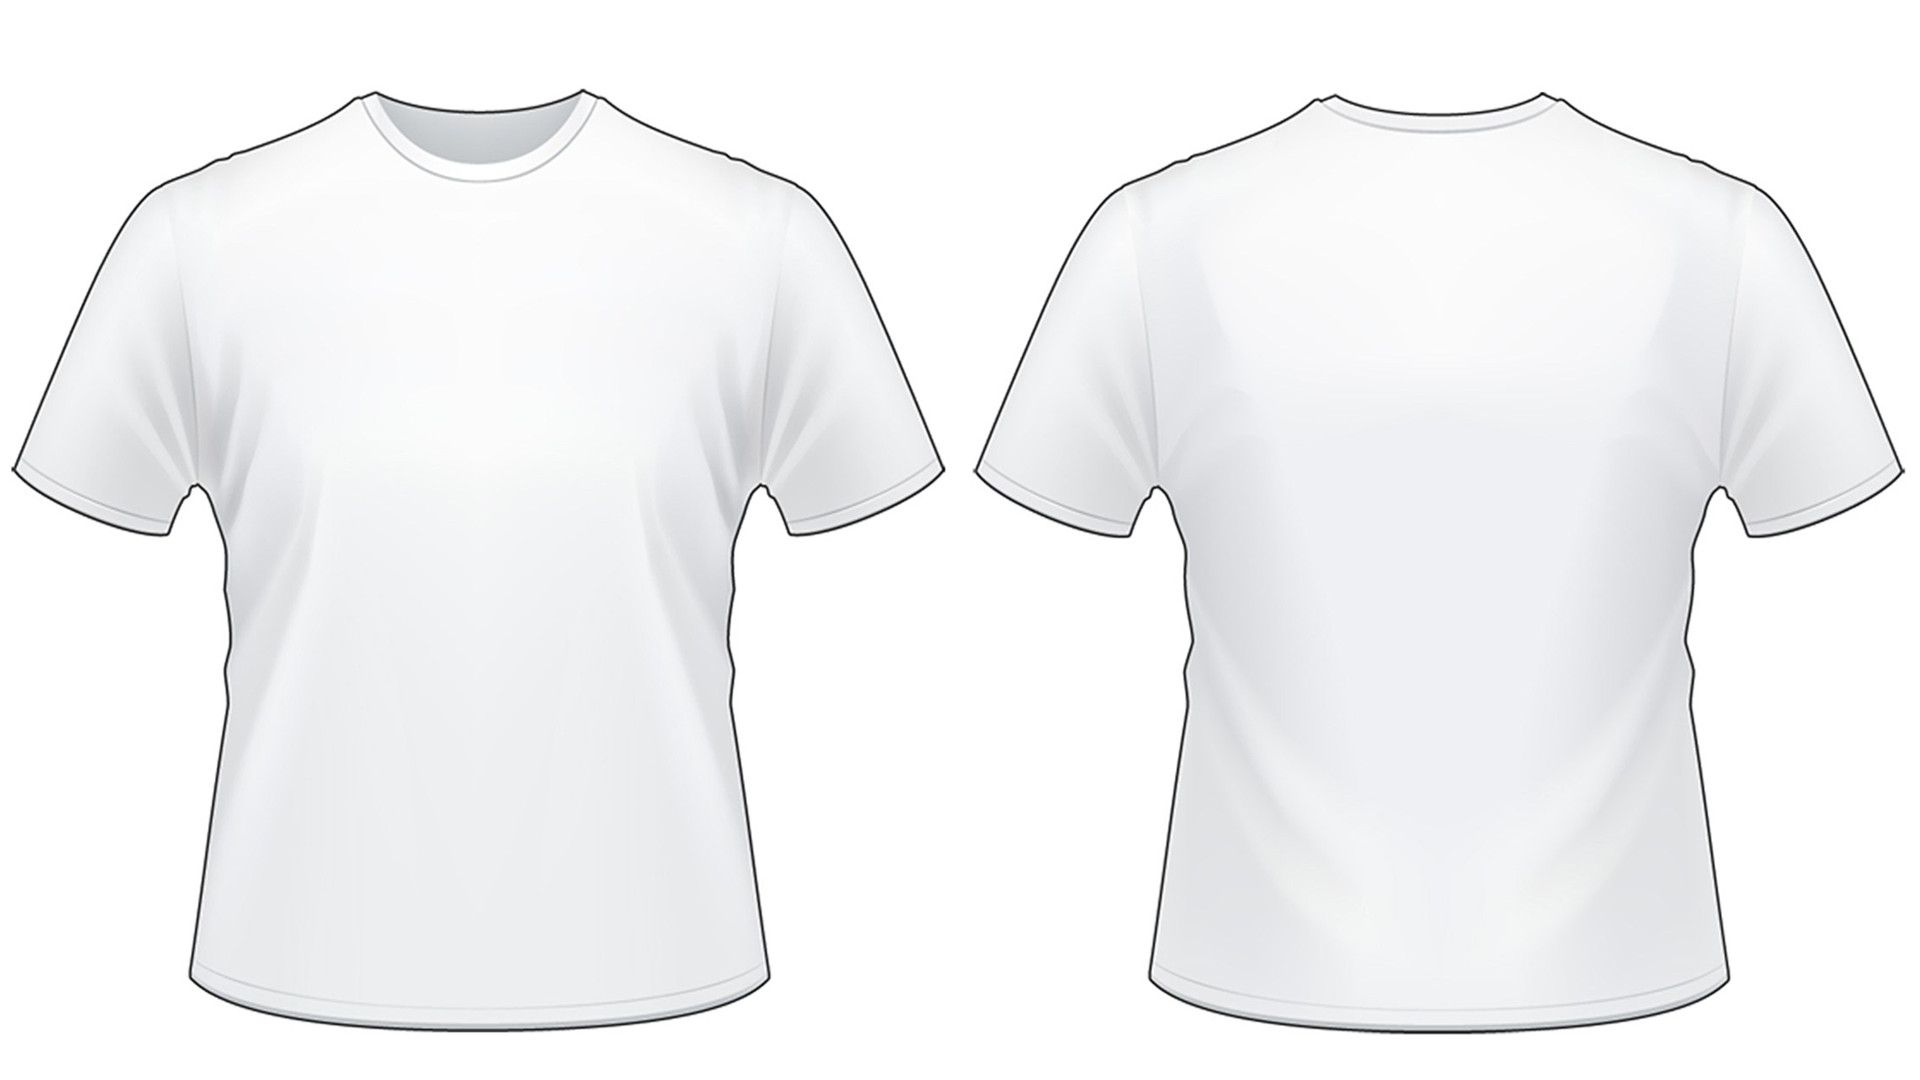 Tee Shirt Design Template Blank Tshirt Template Worksheet In Png Hd Wallpapers